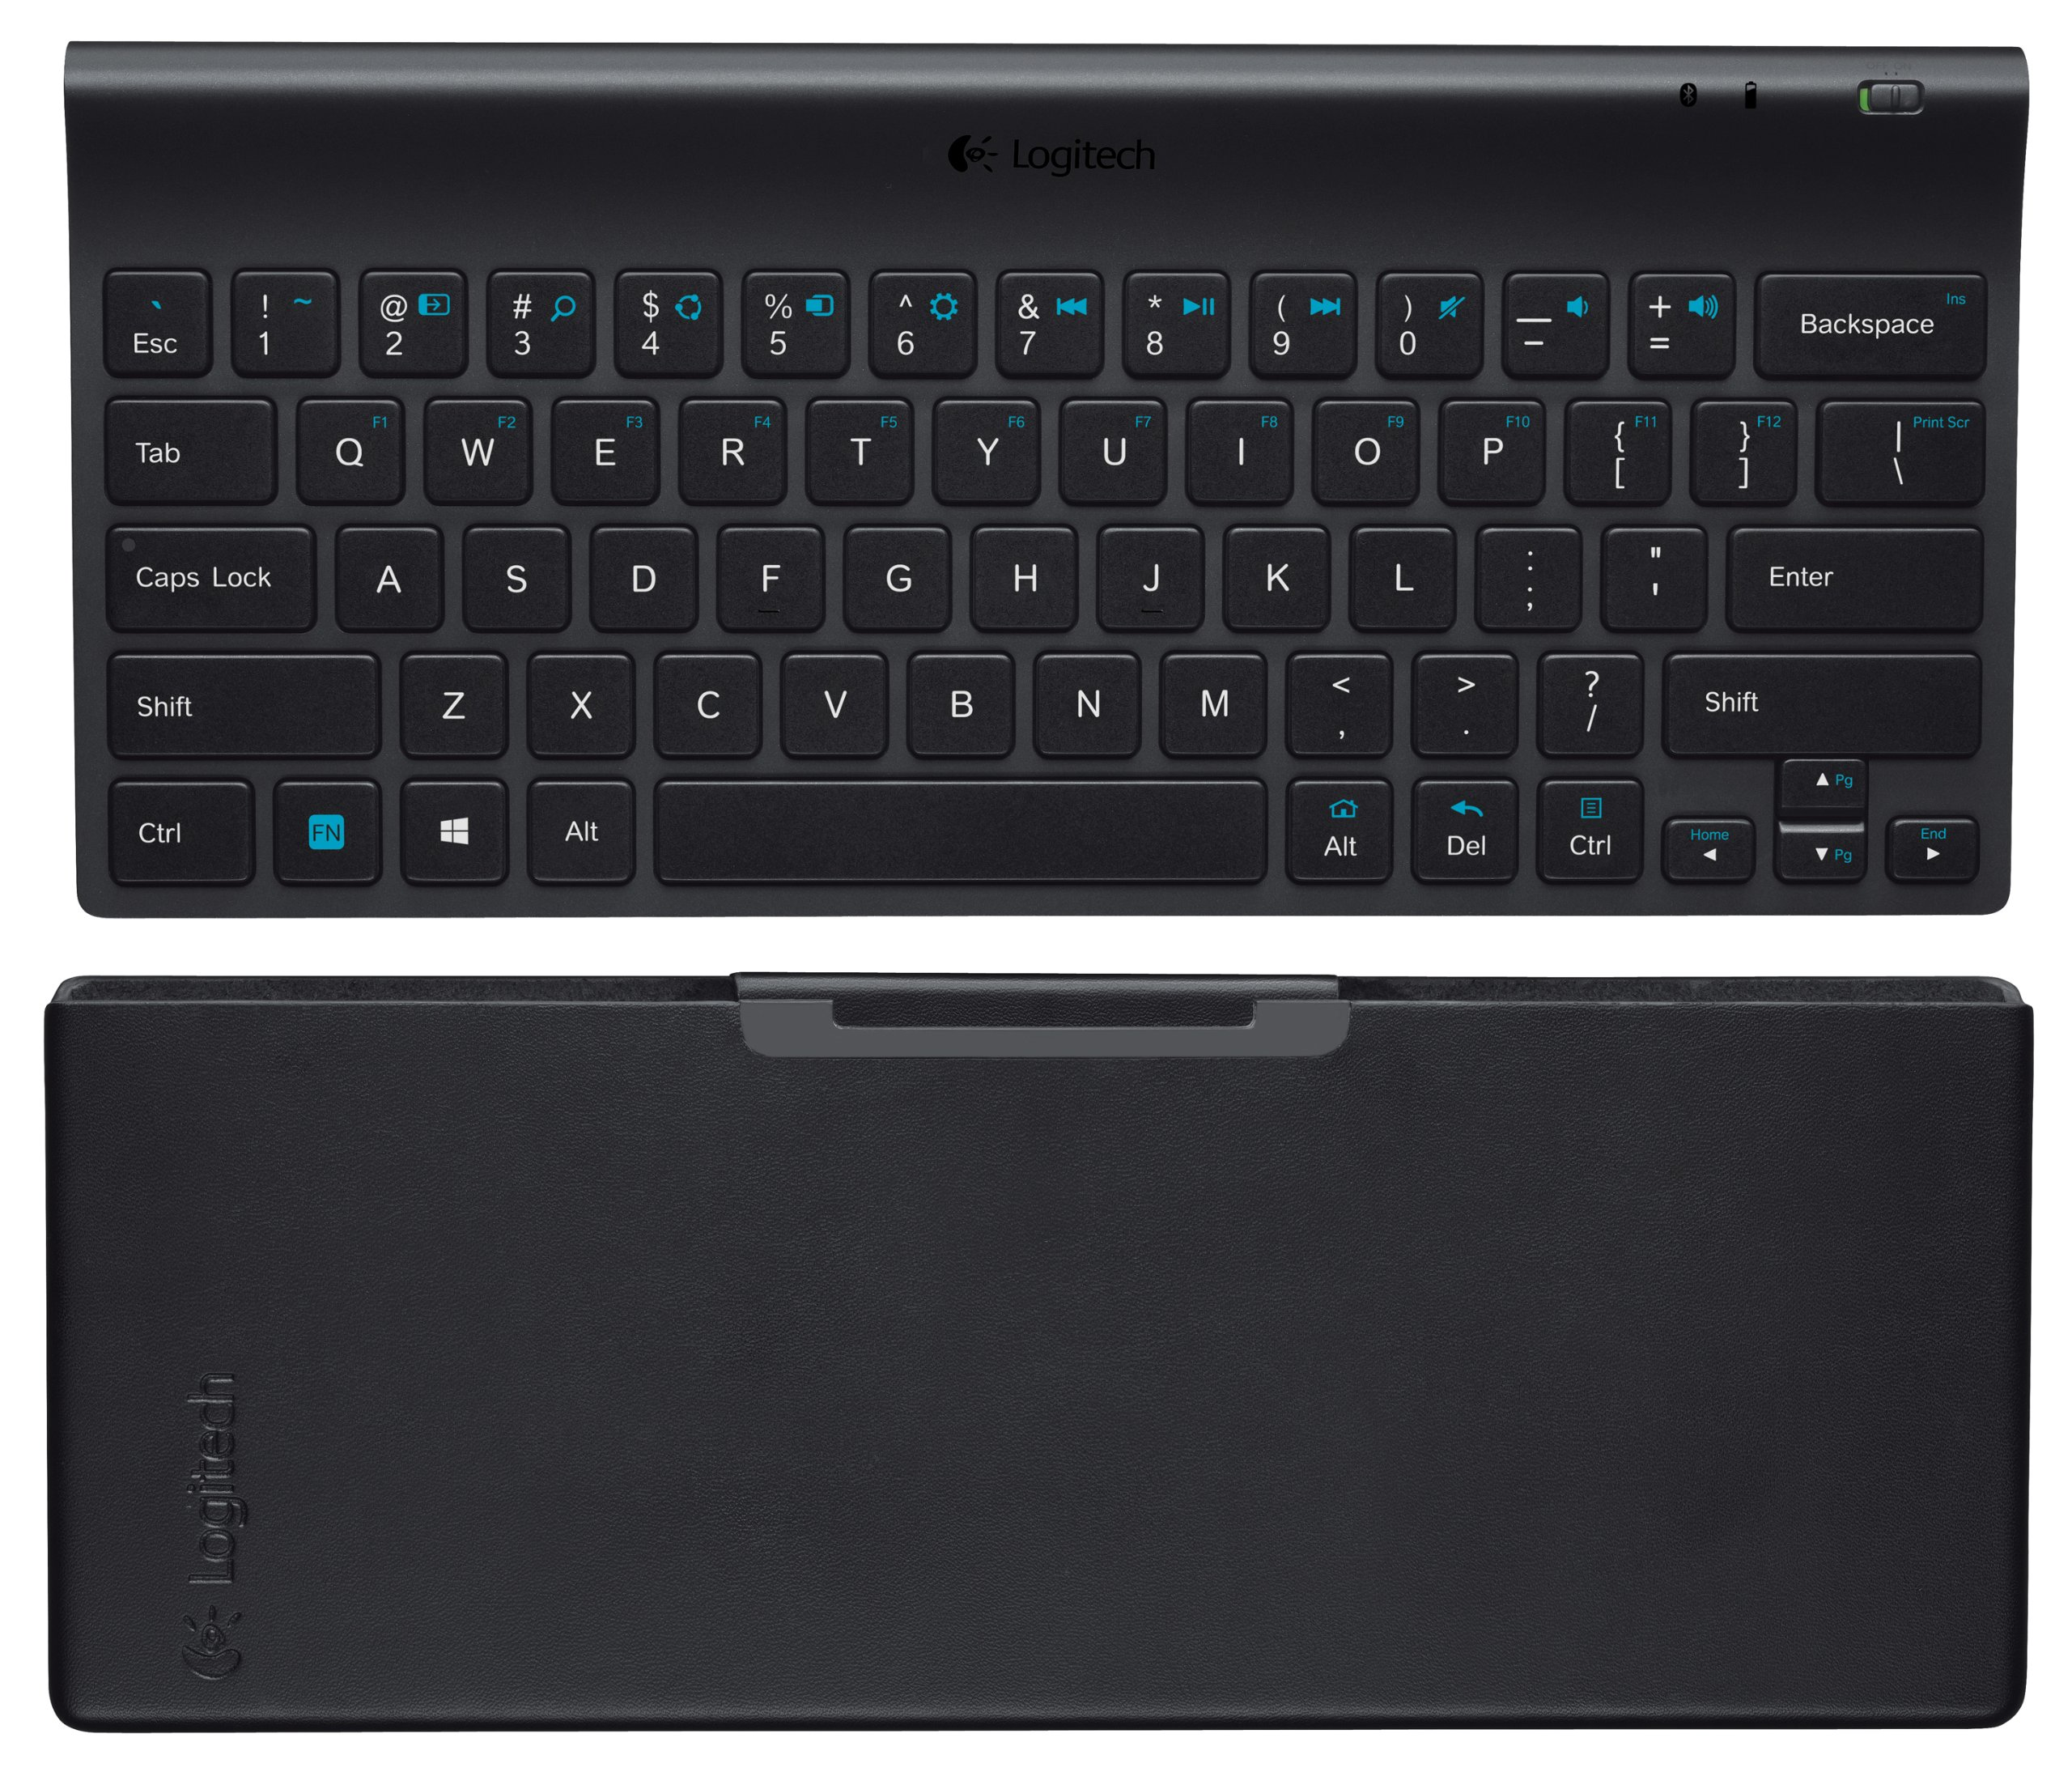 Logitech Tablet Keyboard for Windows 8, Windows RT and Android3.0+